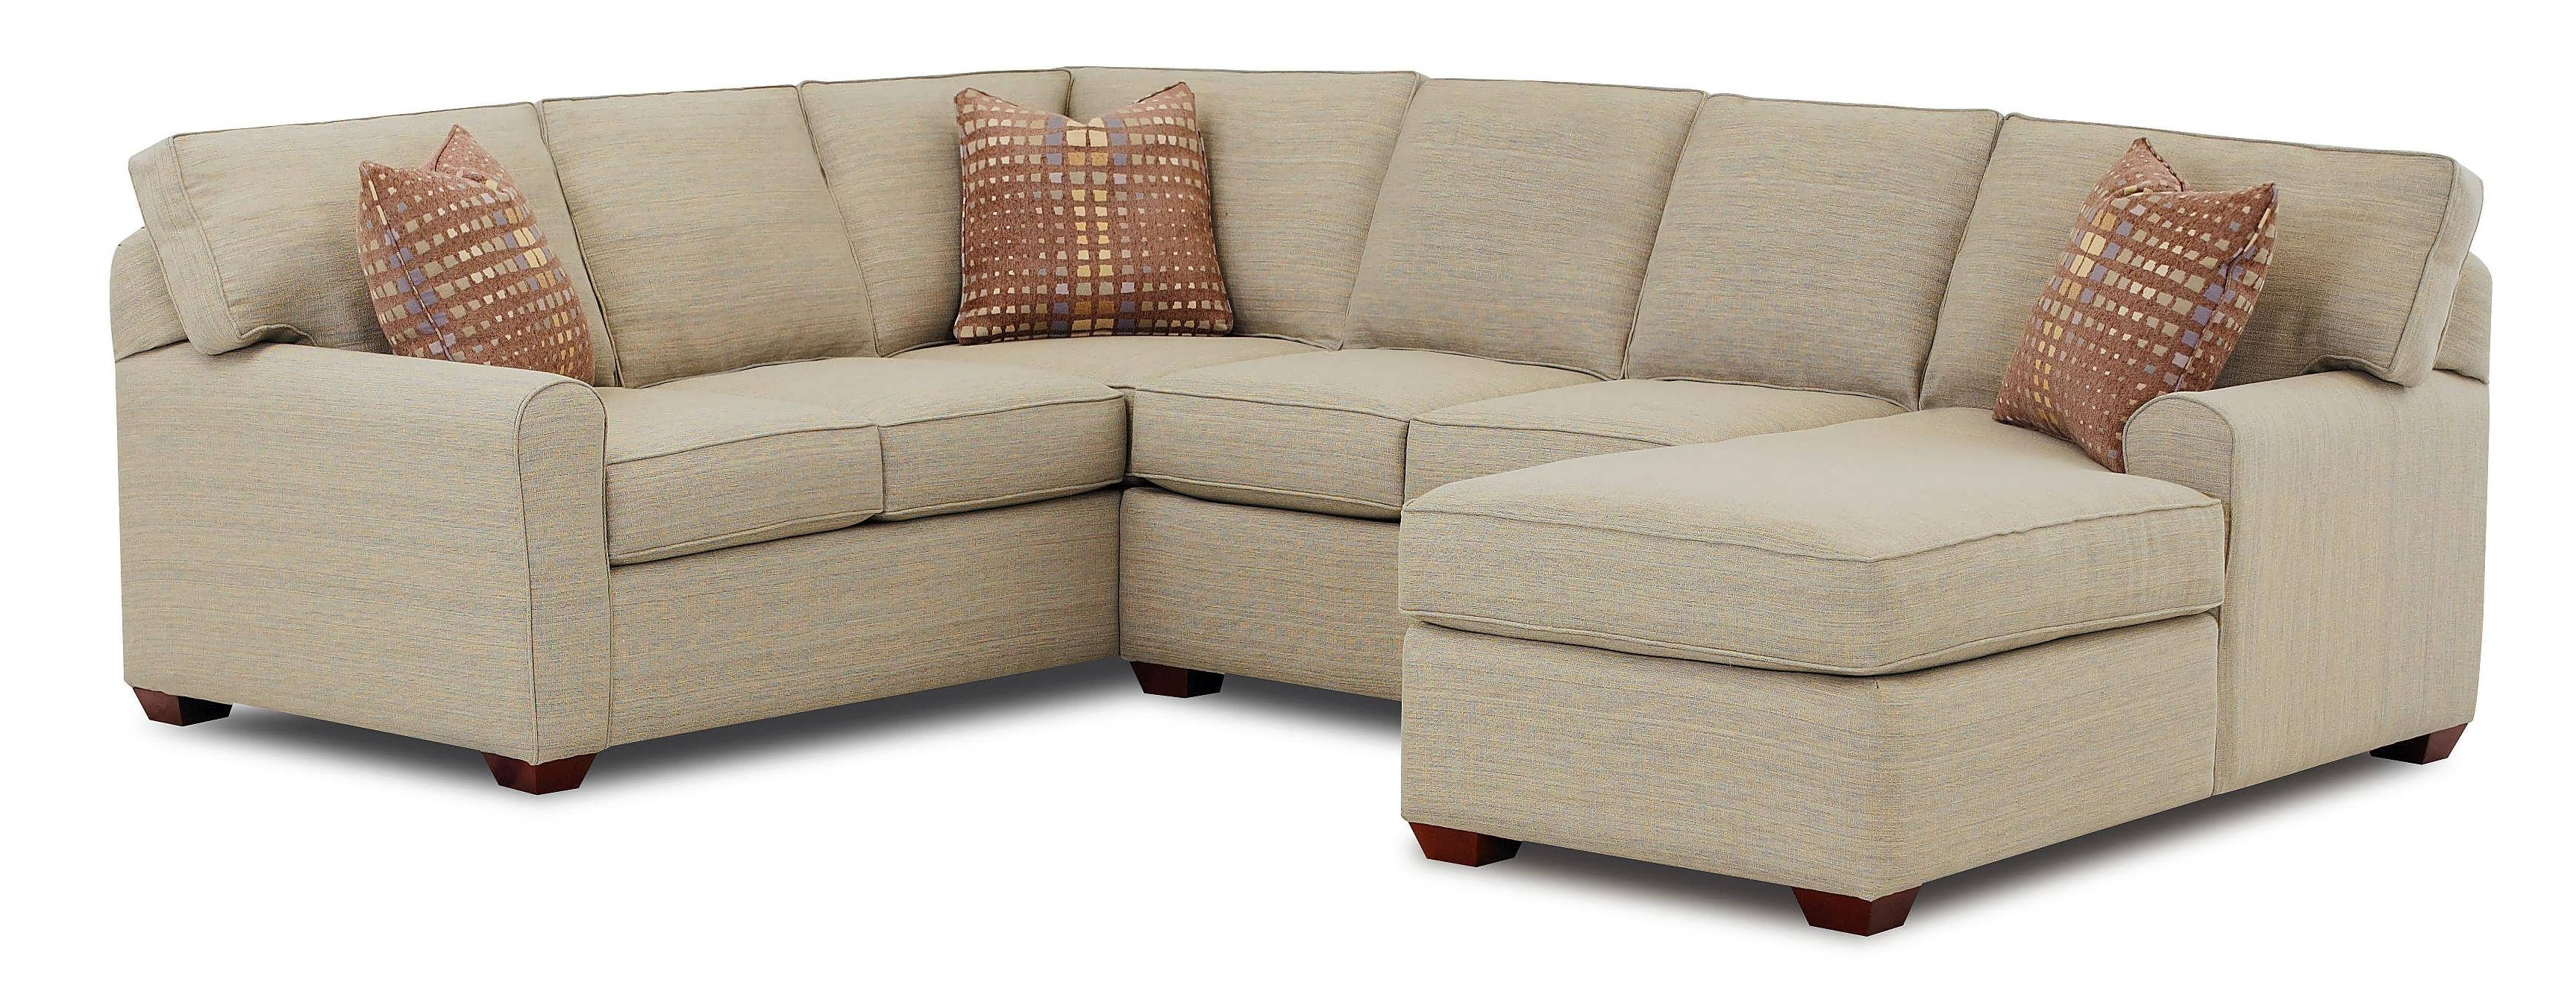 Couches With Chaise Lounge Throughout Fashionable Sofa : L Shaped Couch 3 Piece Sectional Sofa Modular Sofa Bed (View 13 of 15)